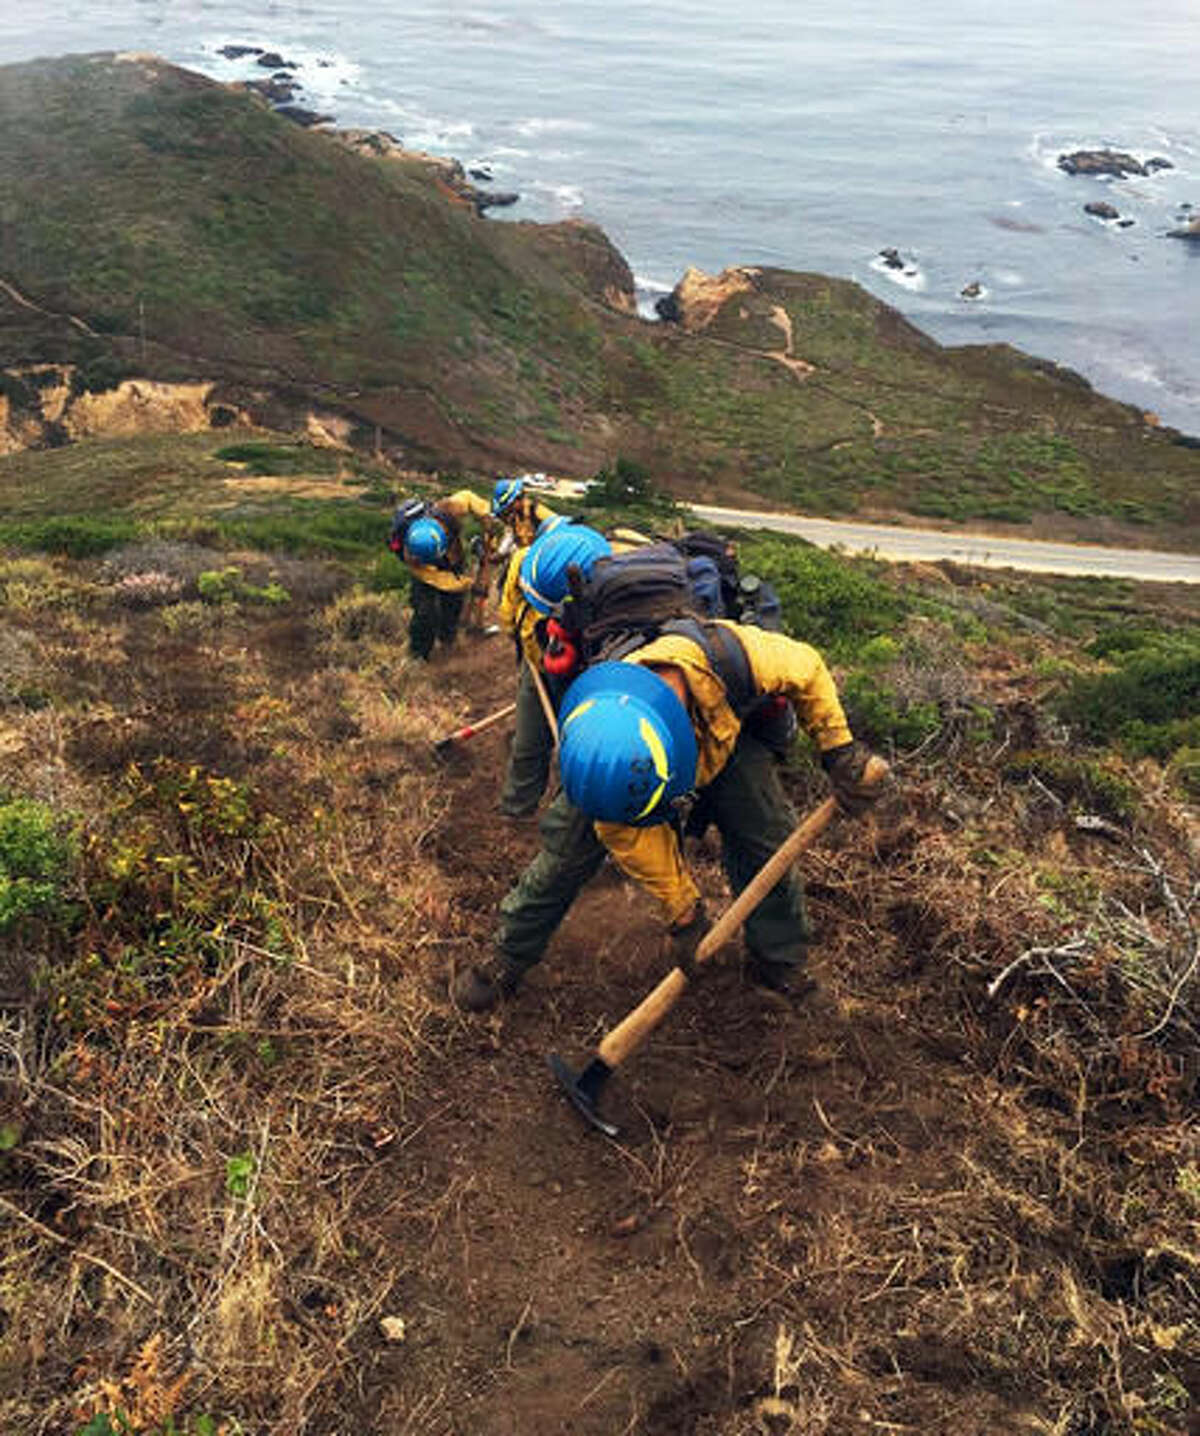 In this Aug. 1, 2016 photo provided by the California Conservation Corps, a civilian firefighter crew cuts fire lines as they work the Soberanes Fire in Garrapata State Park near Big Sur, Calif. California officials faced with a shrinking pool of inmate firefighters during major blazes are increasingly turning to the California Conservation Corps. The program reopened a camp this year to train multiple crews of young civilian firefighters to do the same backbreaking work as inmates. (Andrae Aldrete/California Conservation Corps via AP)